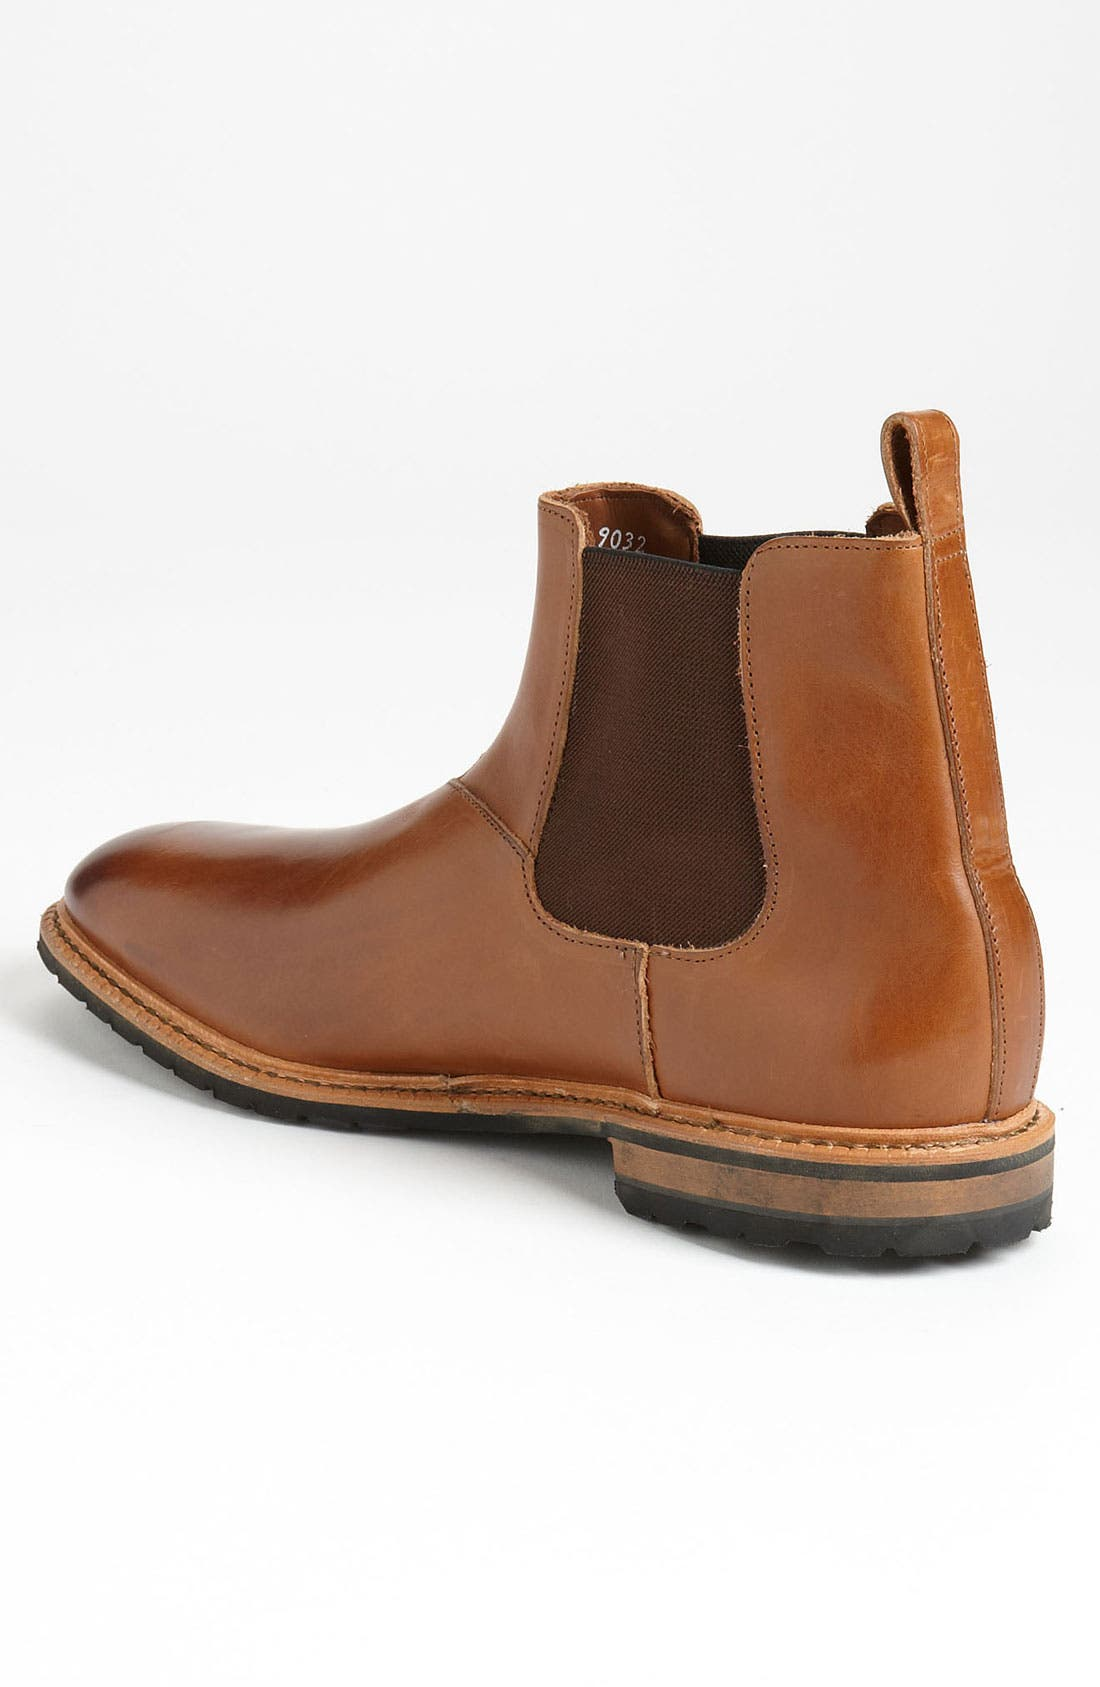 'Ashbury' Chelsea Boot,                             Alternate thumbnail 3, color,                             230